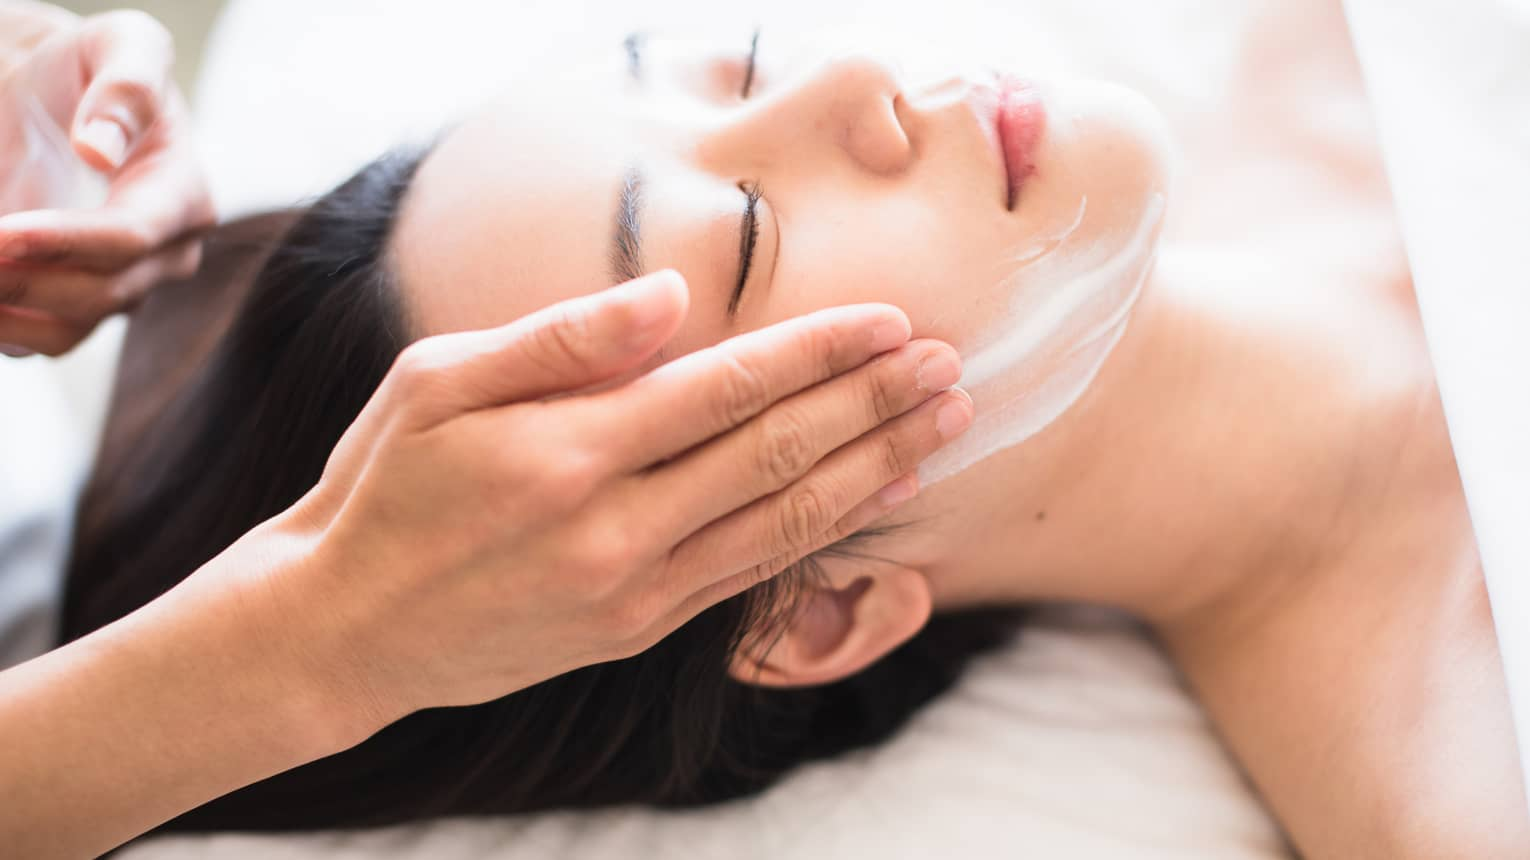 Close-up of spa attendant's hands rubbing white cream on woman's face as she lies on massage table